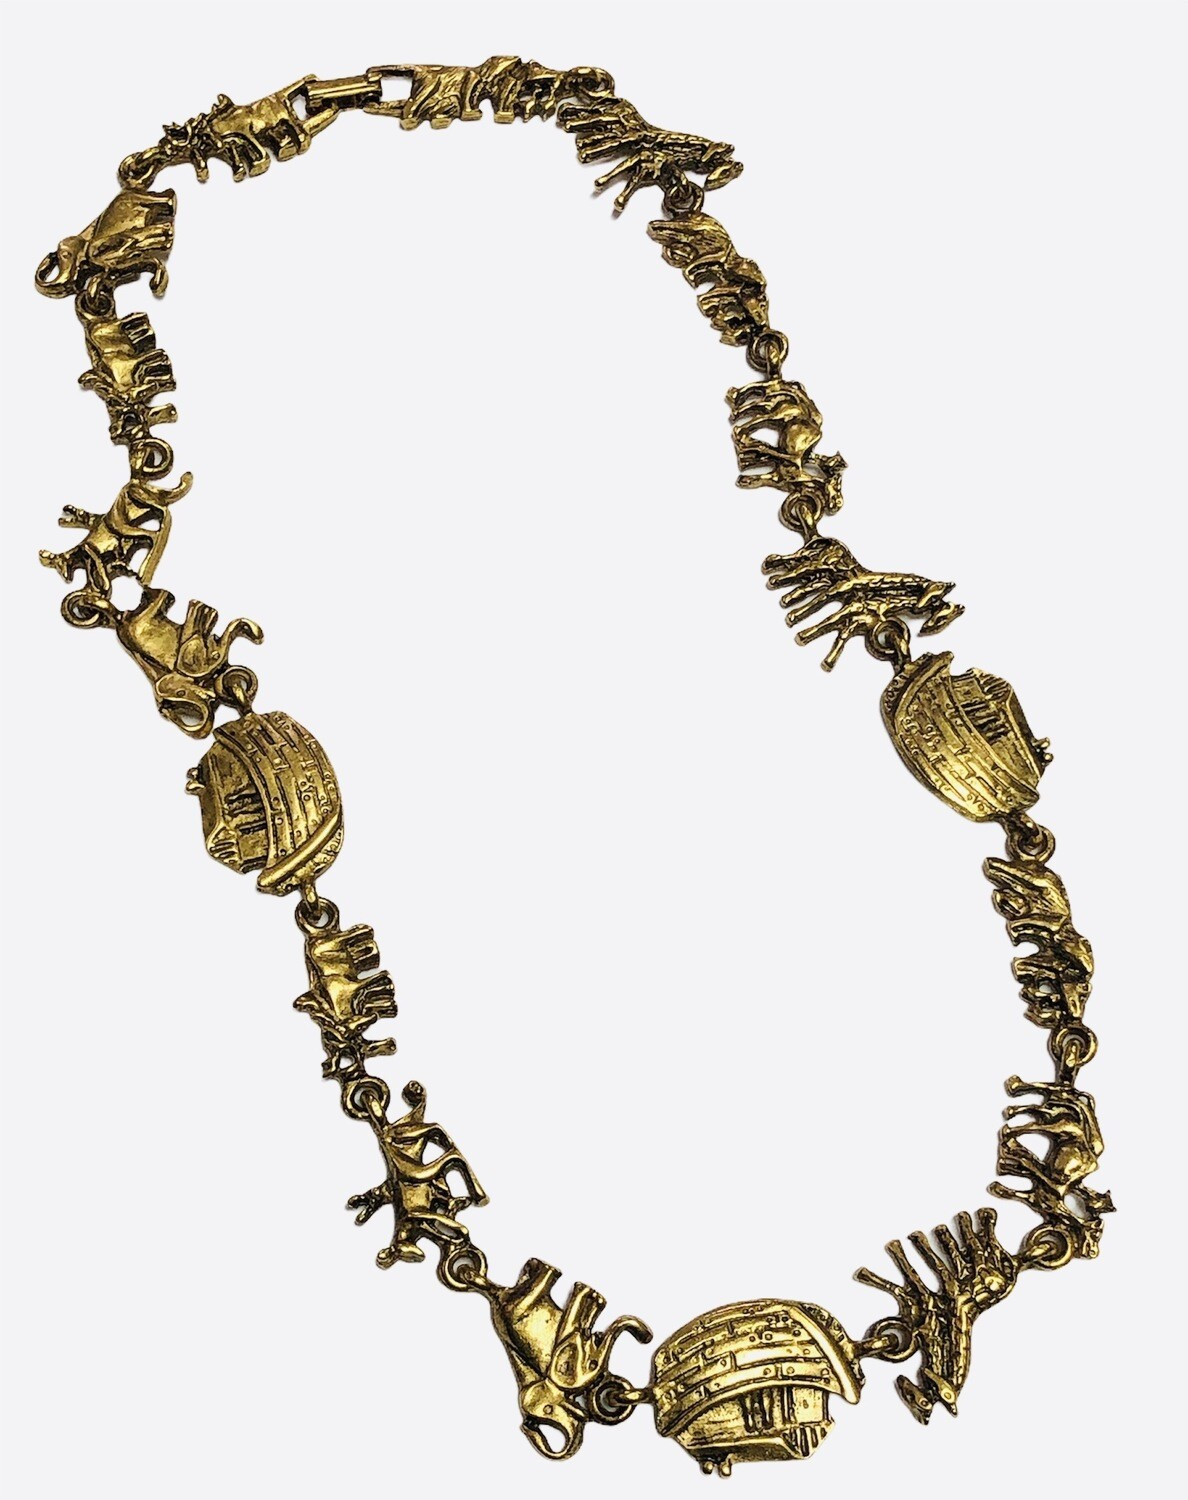 Antique Gold NOAHS ARK Charm Necklace